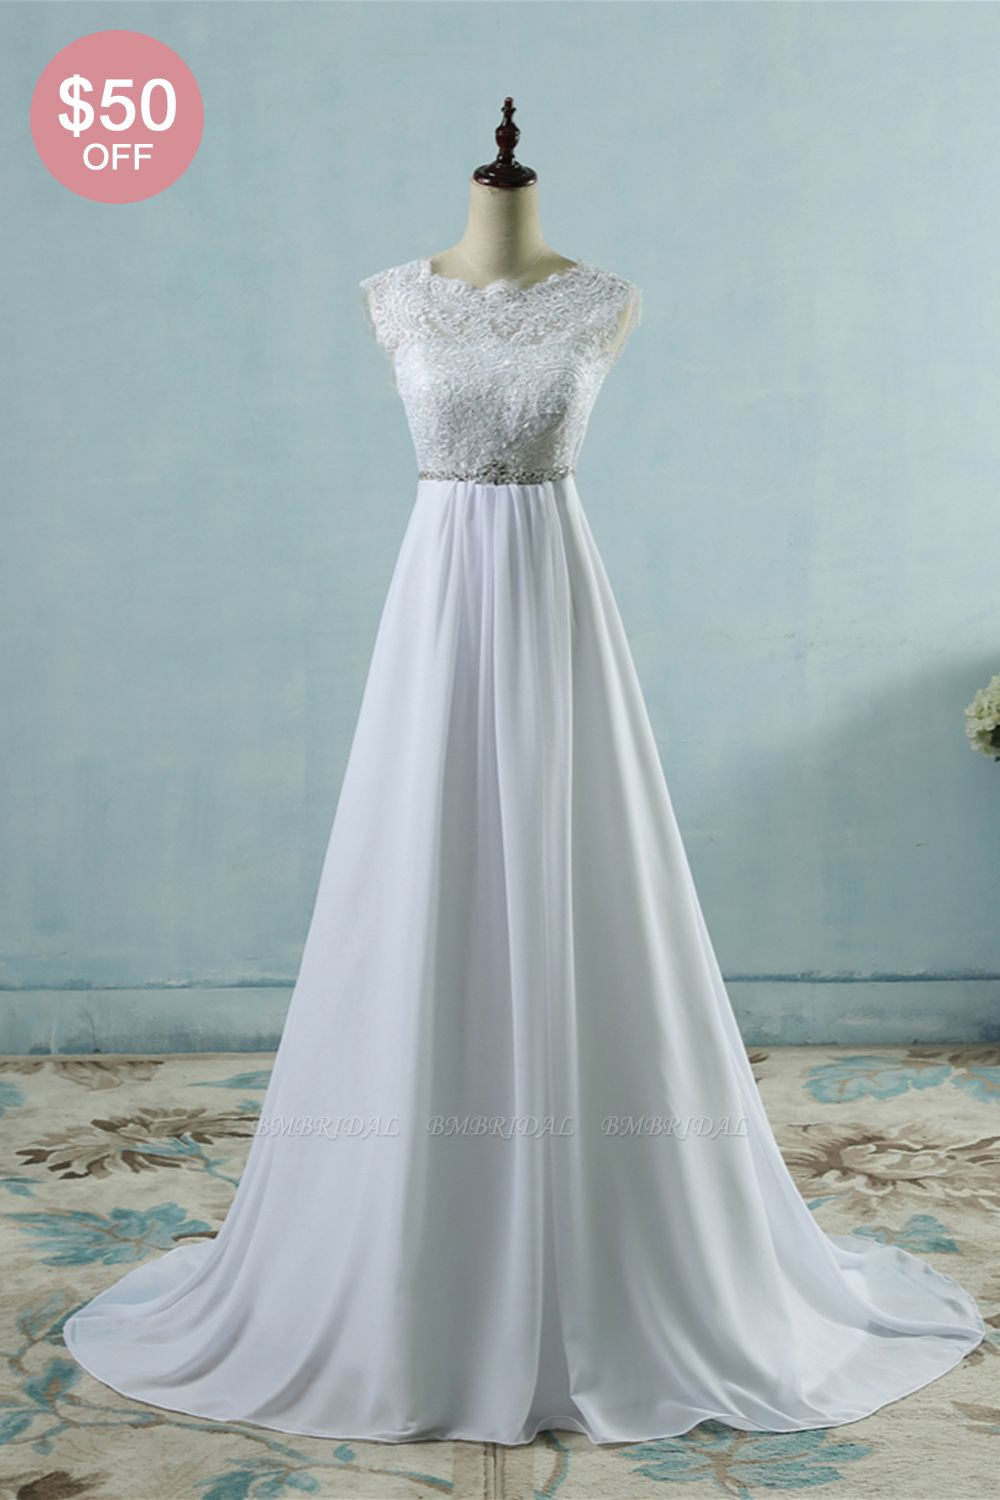 BMbridal Affordable Chiffon Jewel Lace Ruffles Wedding Dress Sleeveless Appliques Bridal Gowns with Beading Sash